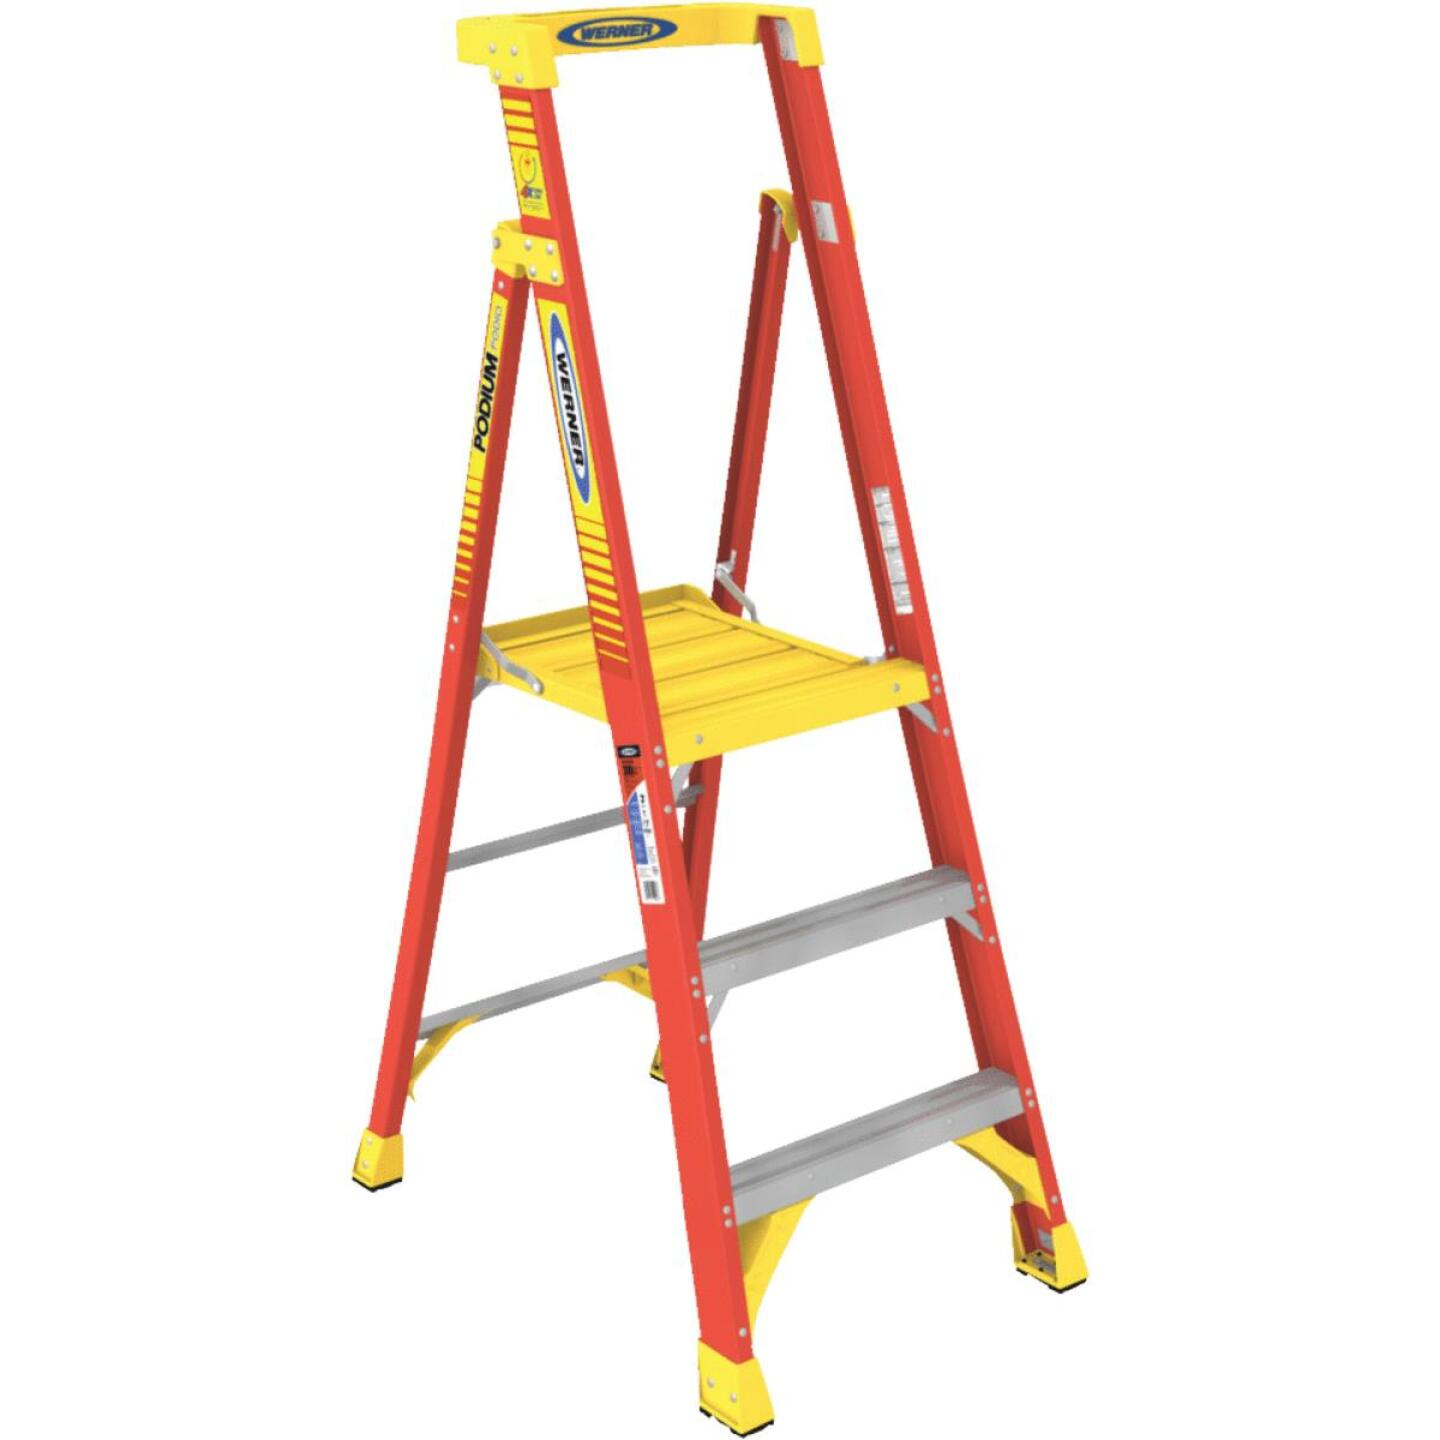 Werner 9 Ft. Reach Fiberglass Podium Ladder with 300 Lb. Load Capacity Type IA Ladder Rating Image 1